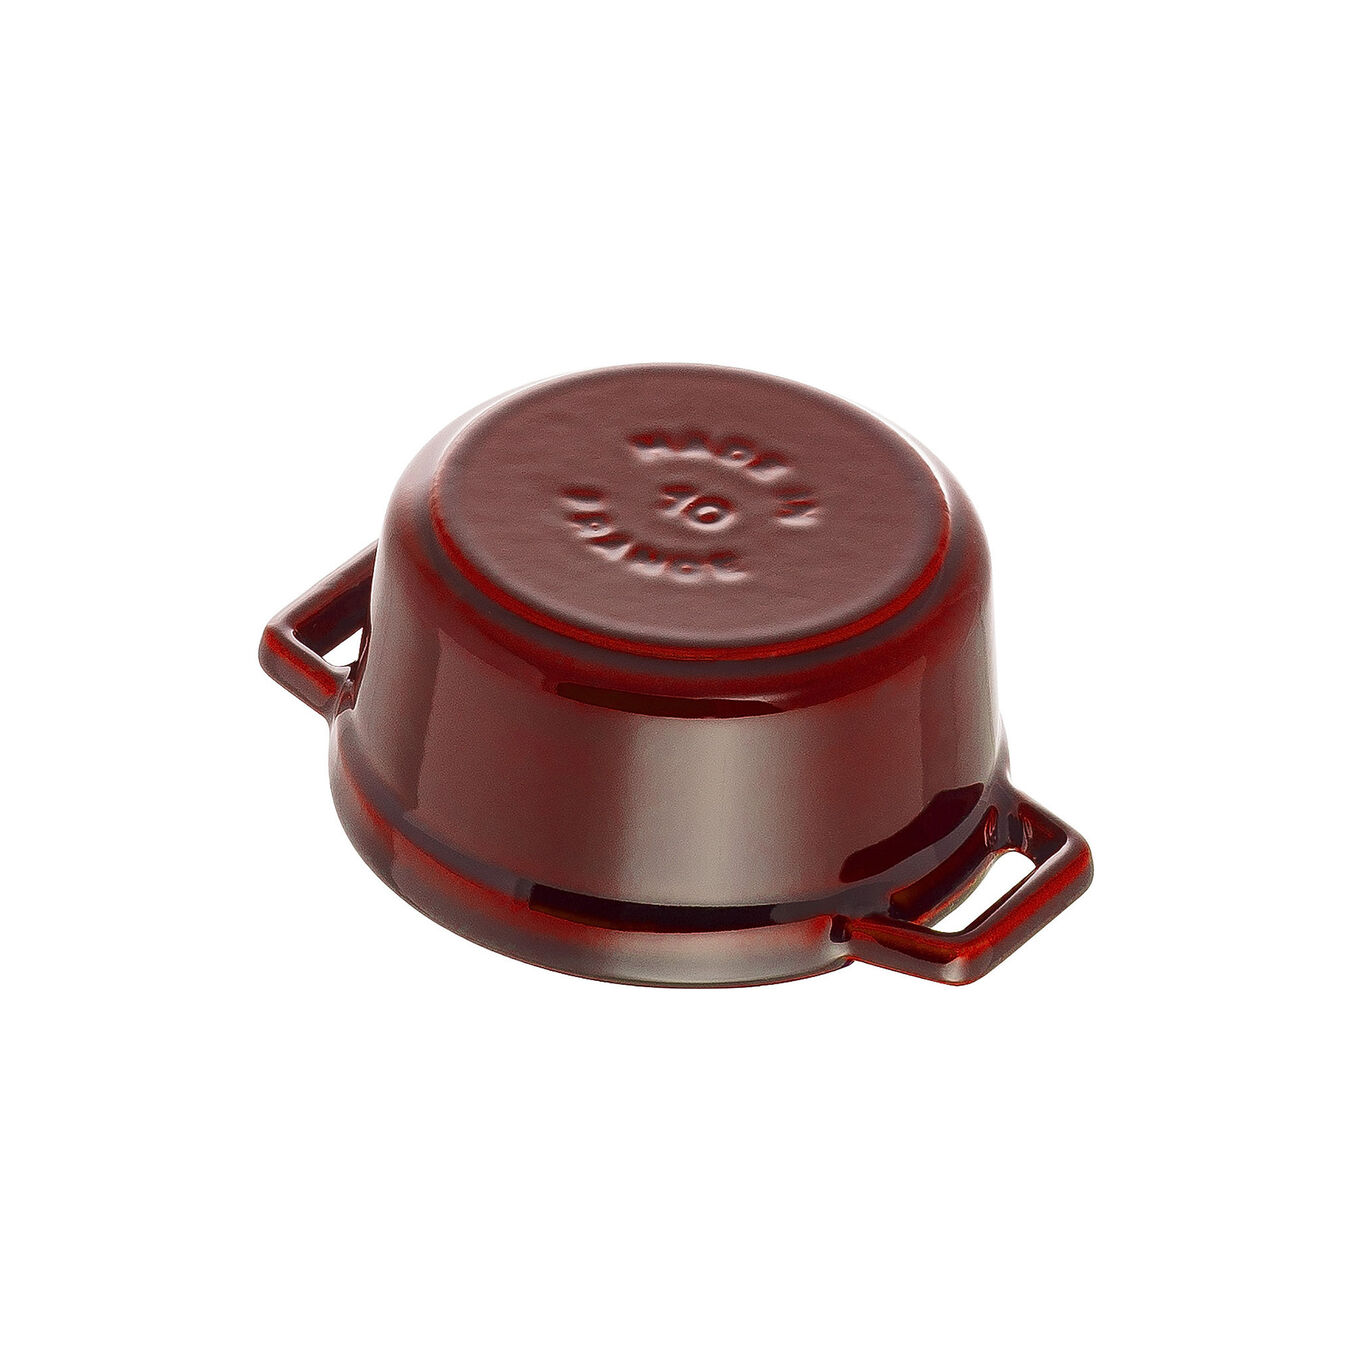 250 ml Cast iron round Mini Cocotte, Grenadine-Red,,large 4